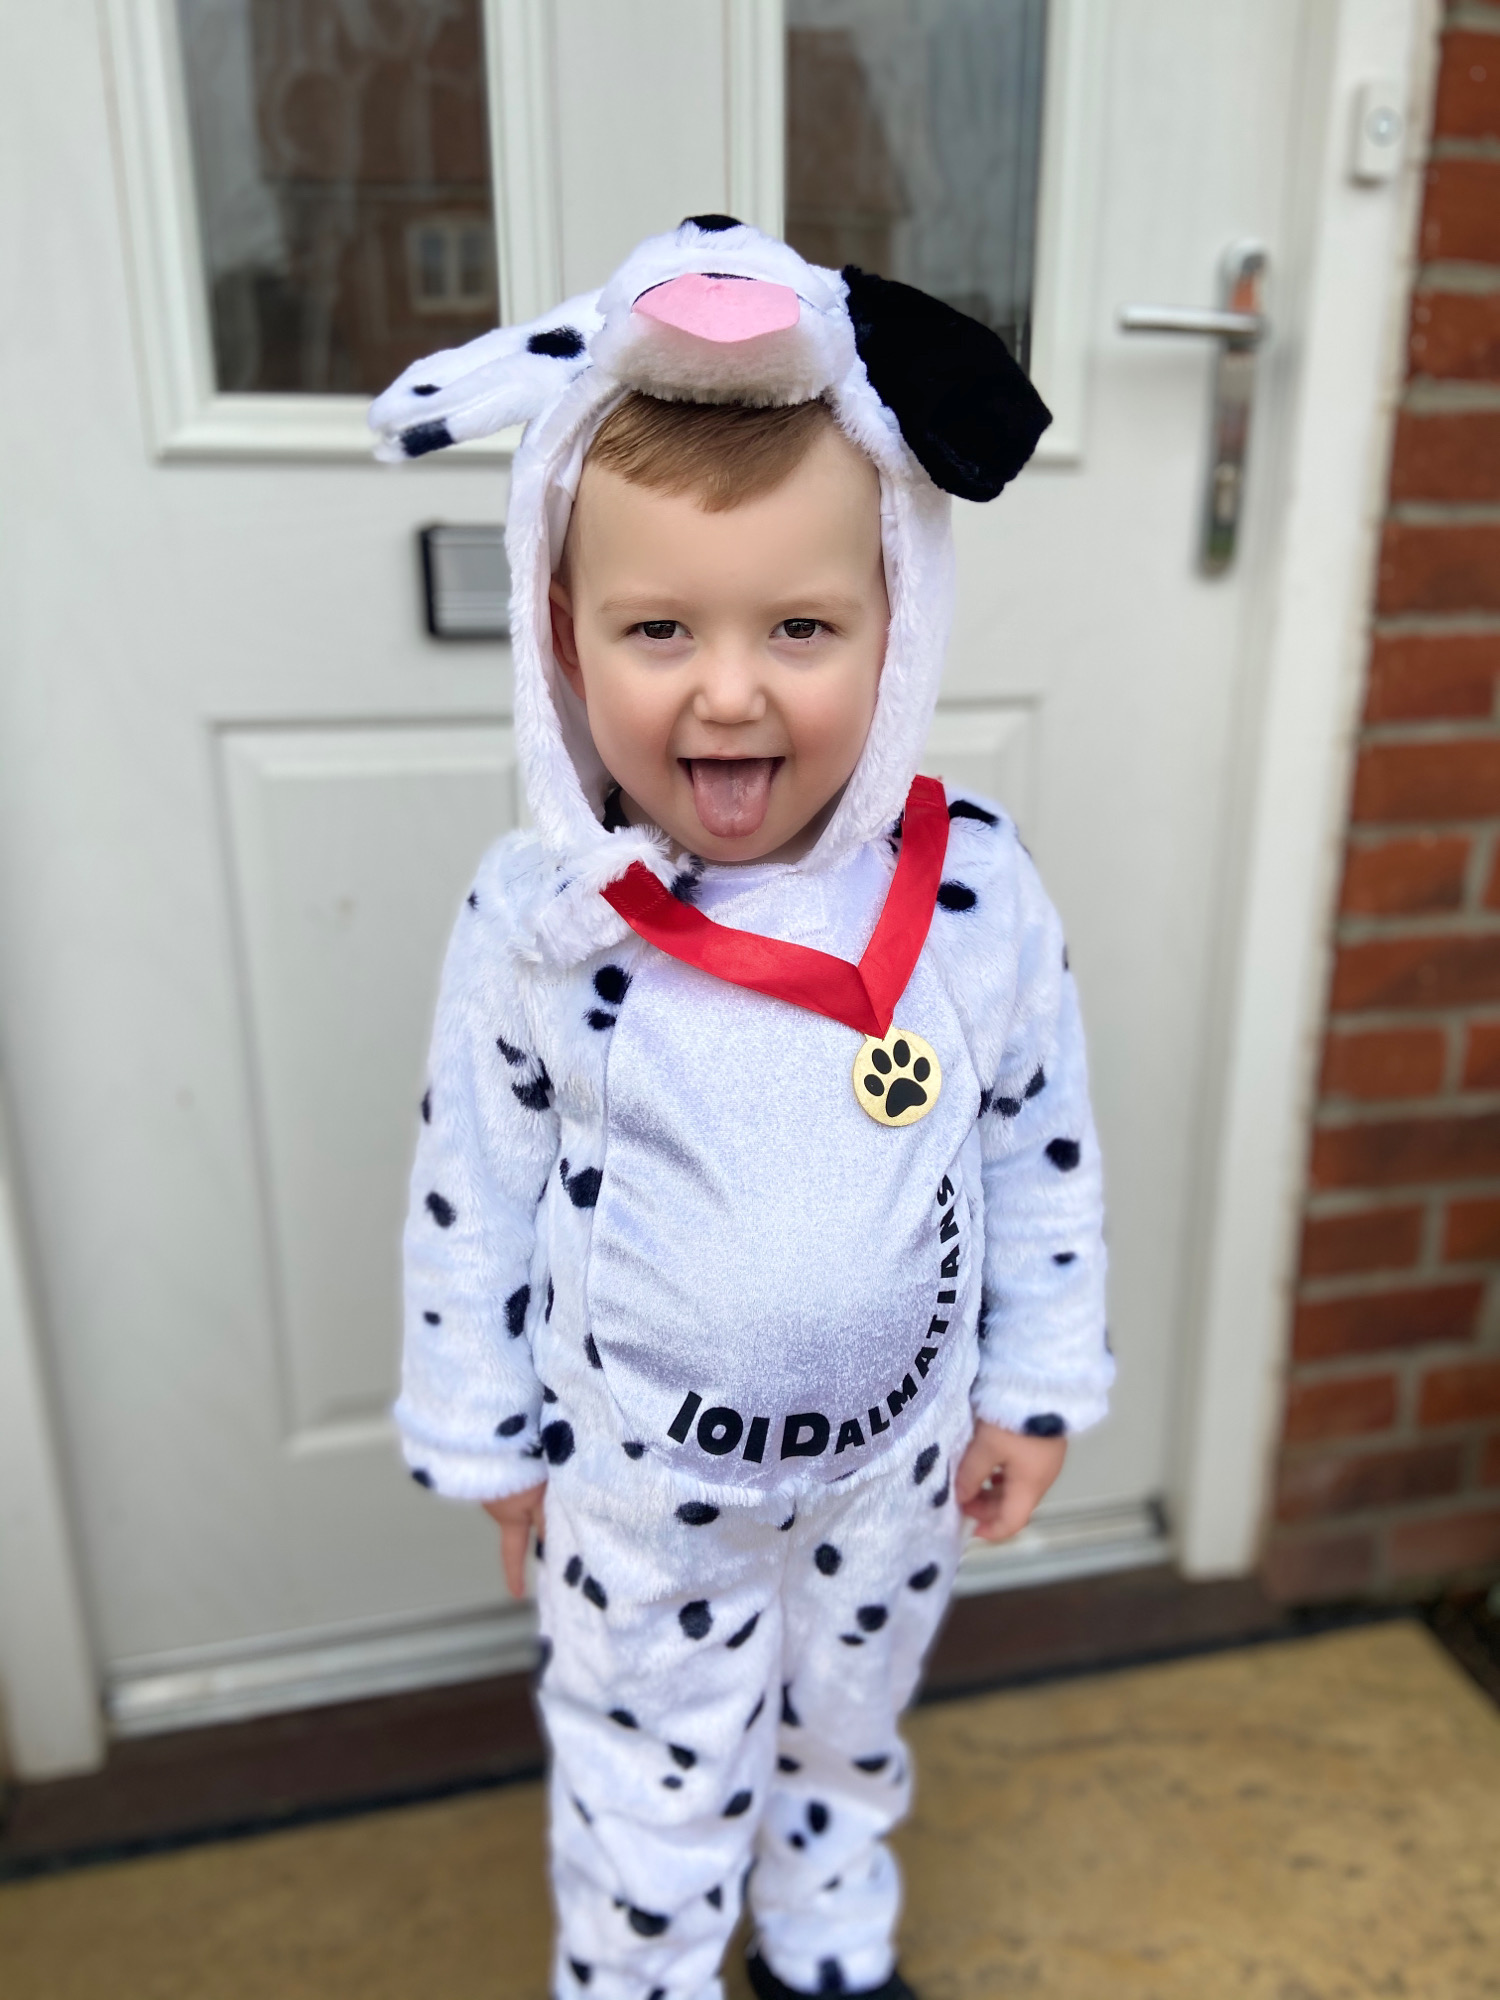 Droitwich Advertiser: Miller age 2 being a 101 Dalmatian for world book day 2020